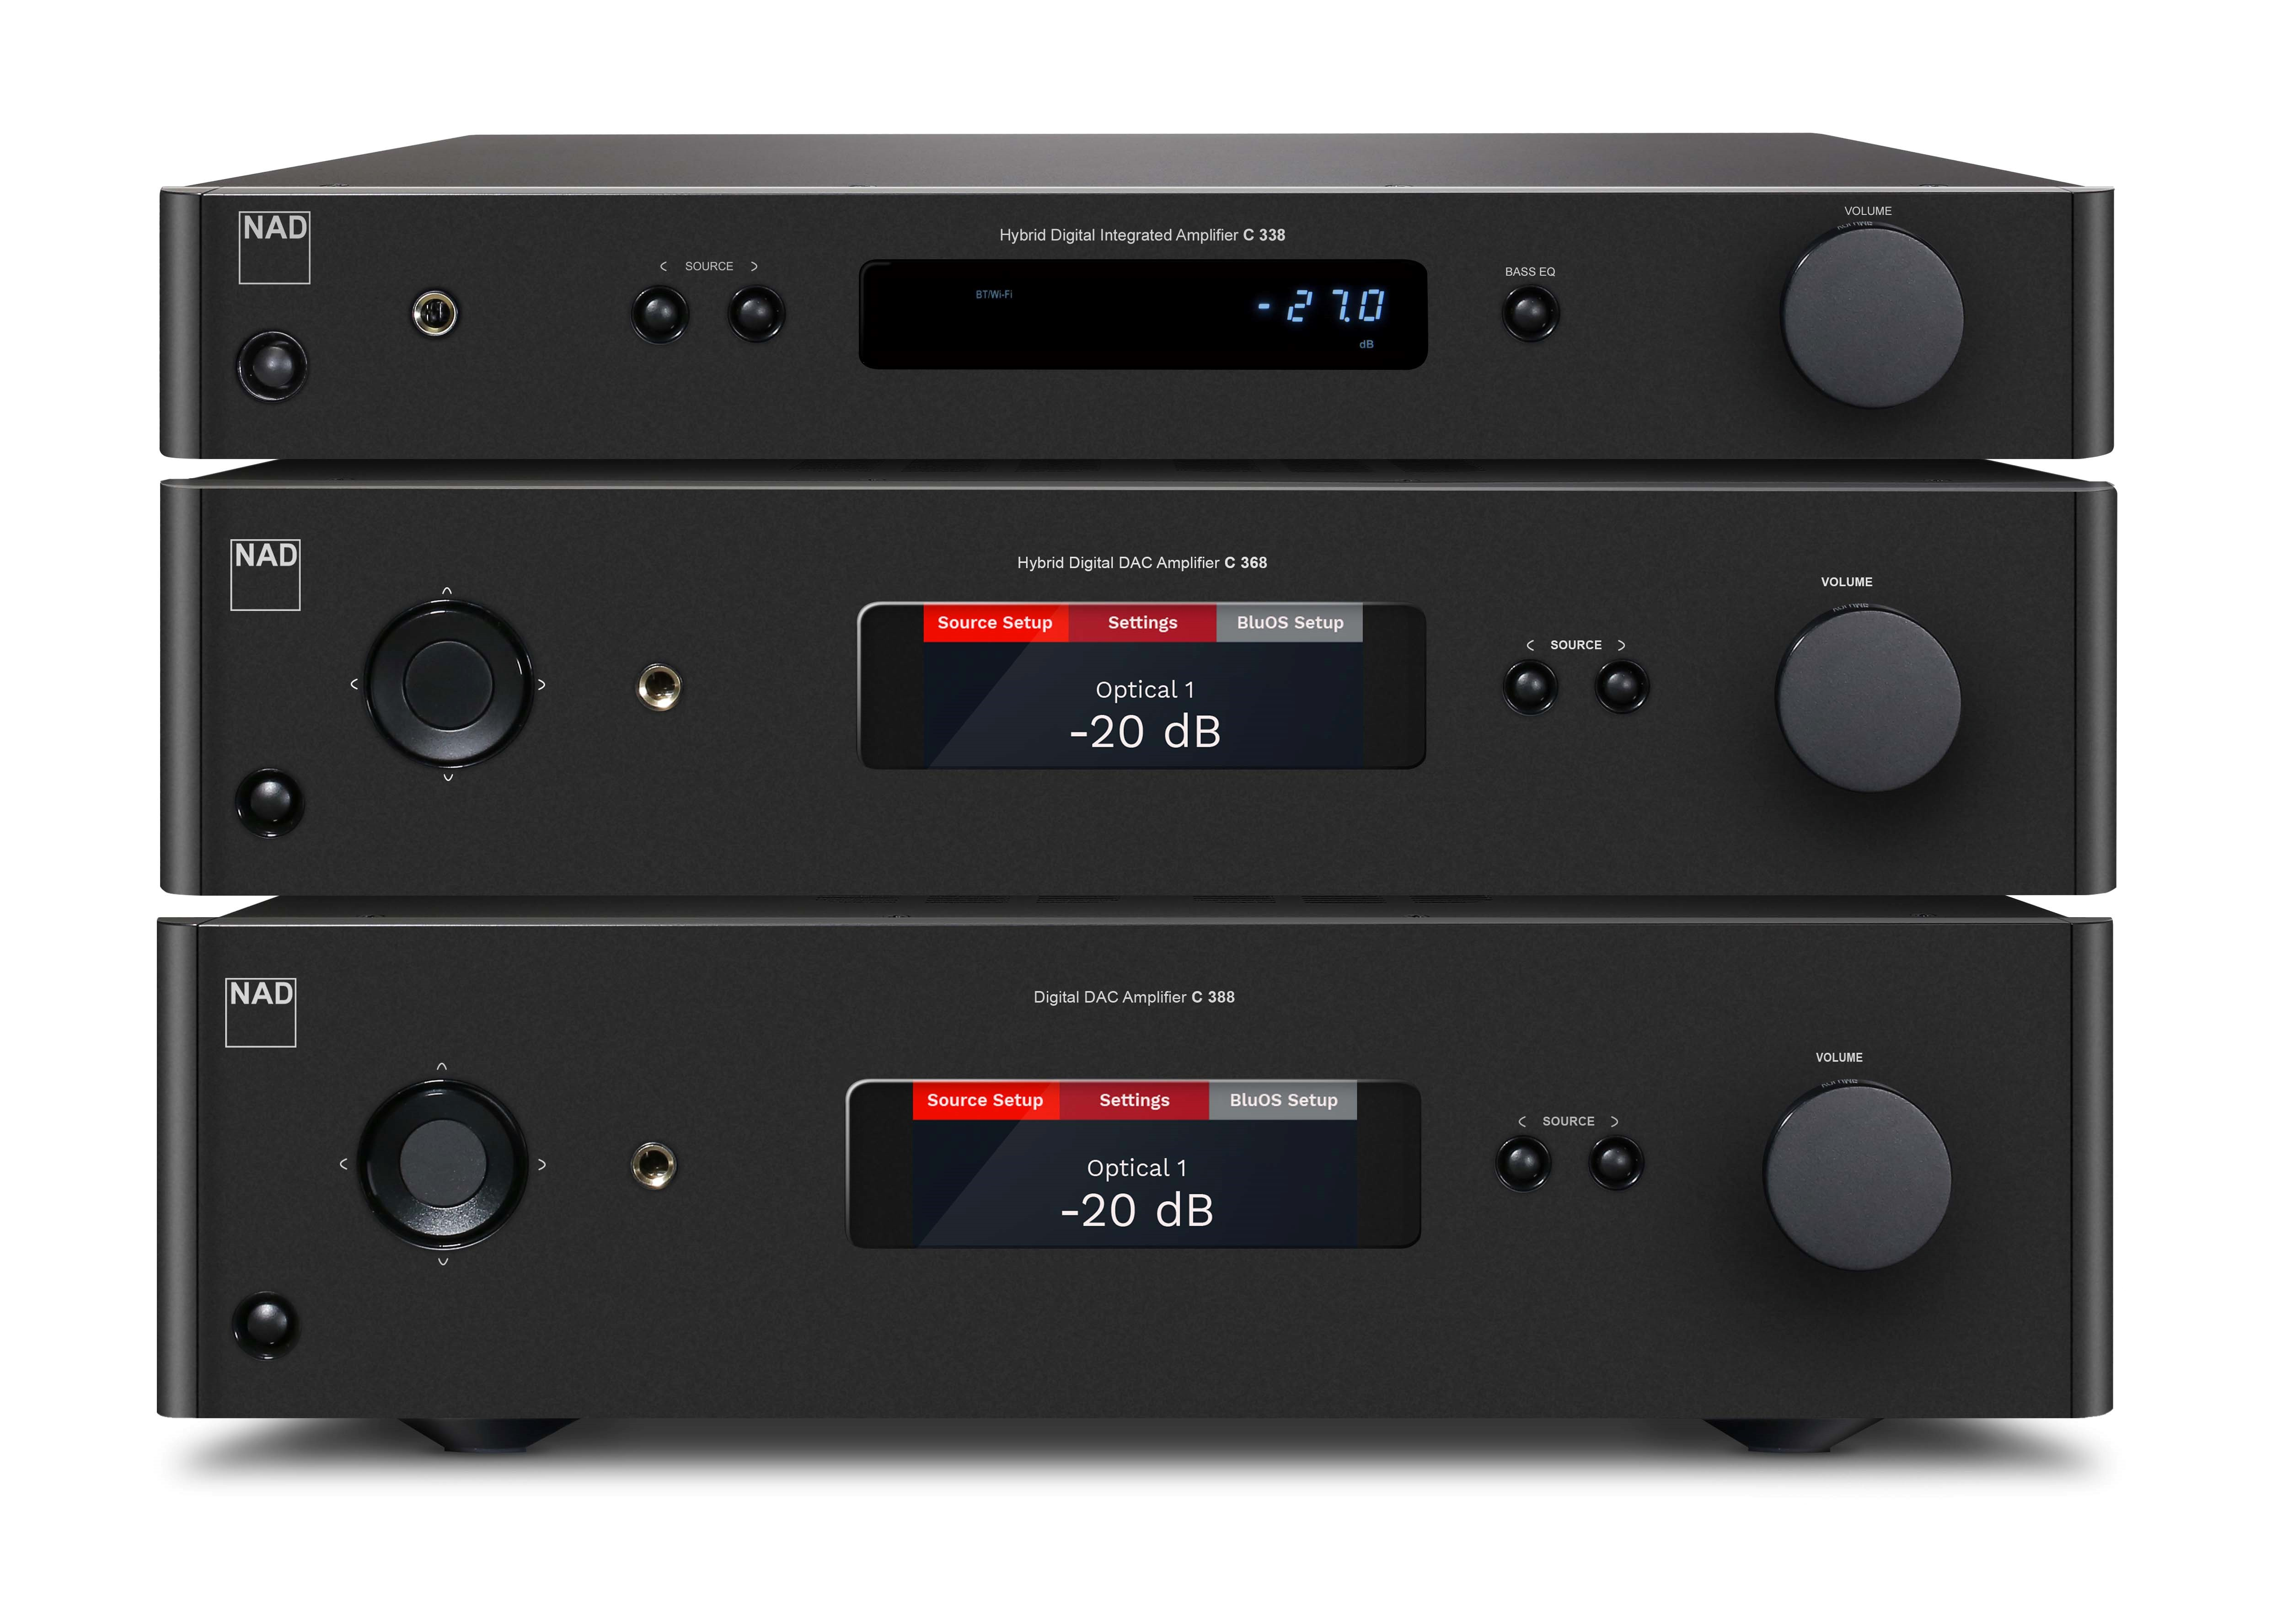 NAD Completes Makeover of Classic Integrated Amplifiers with